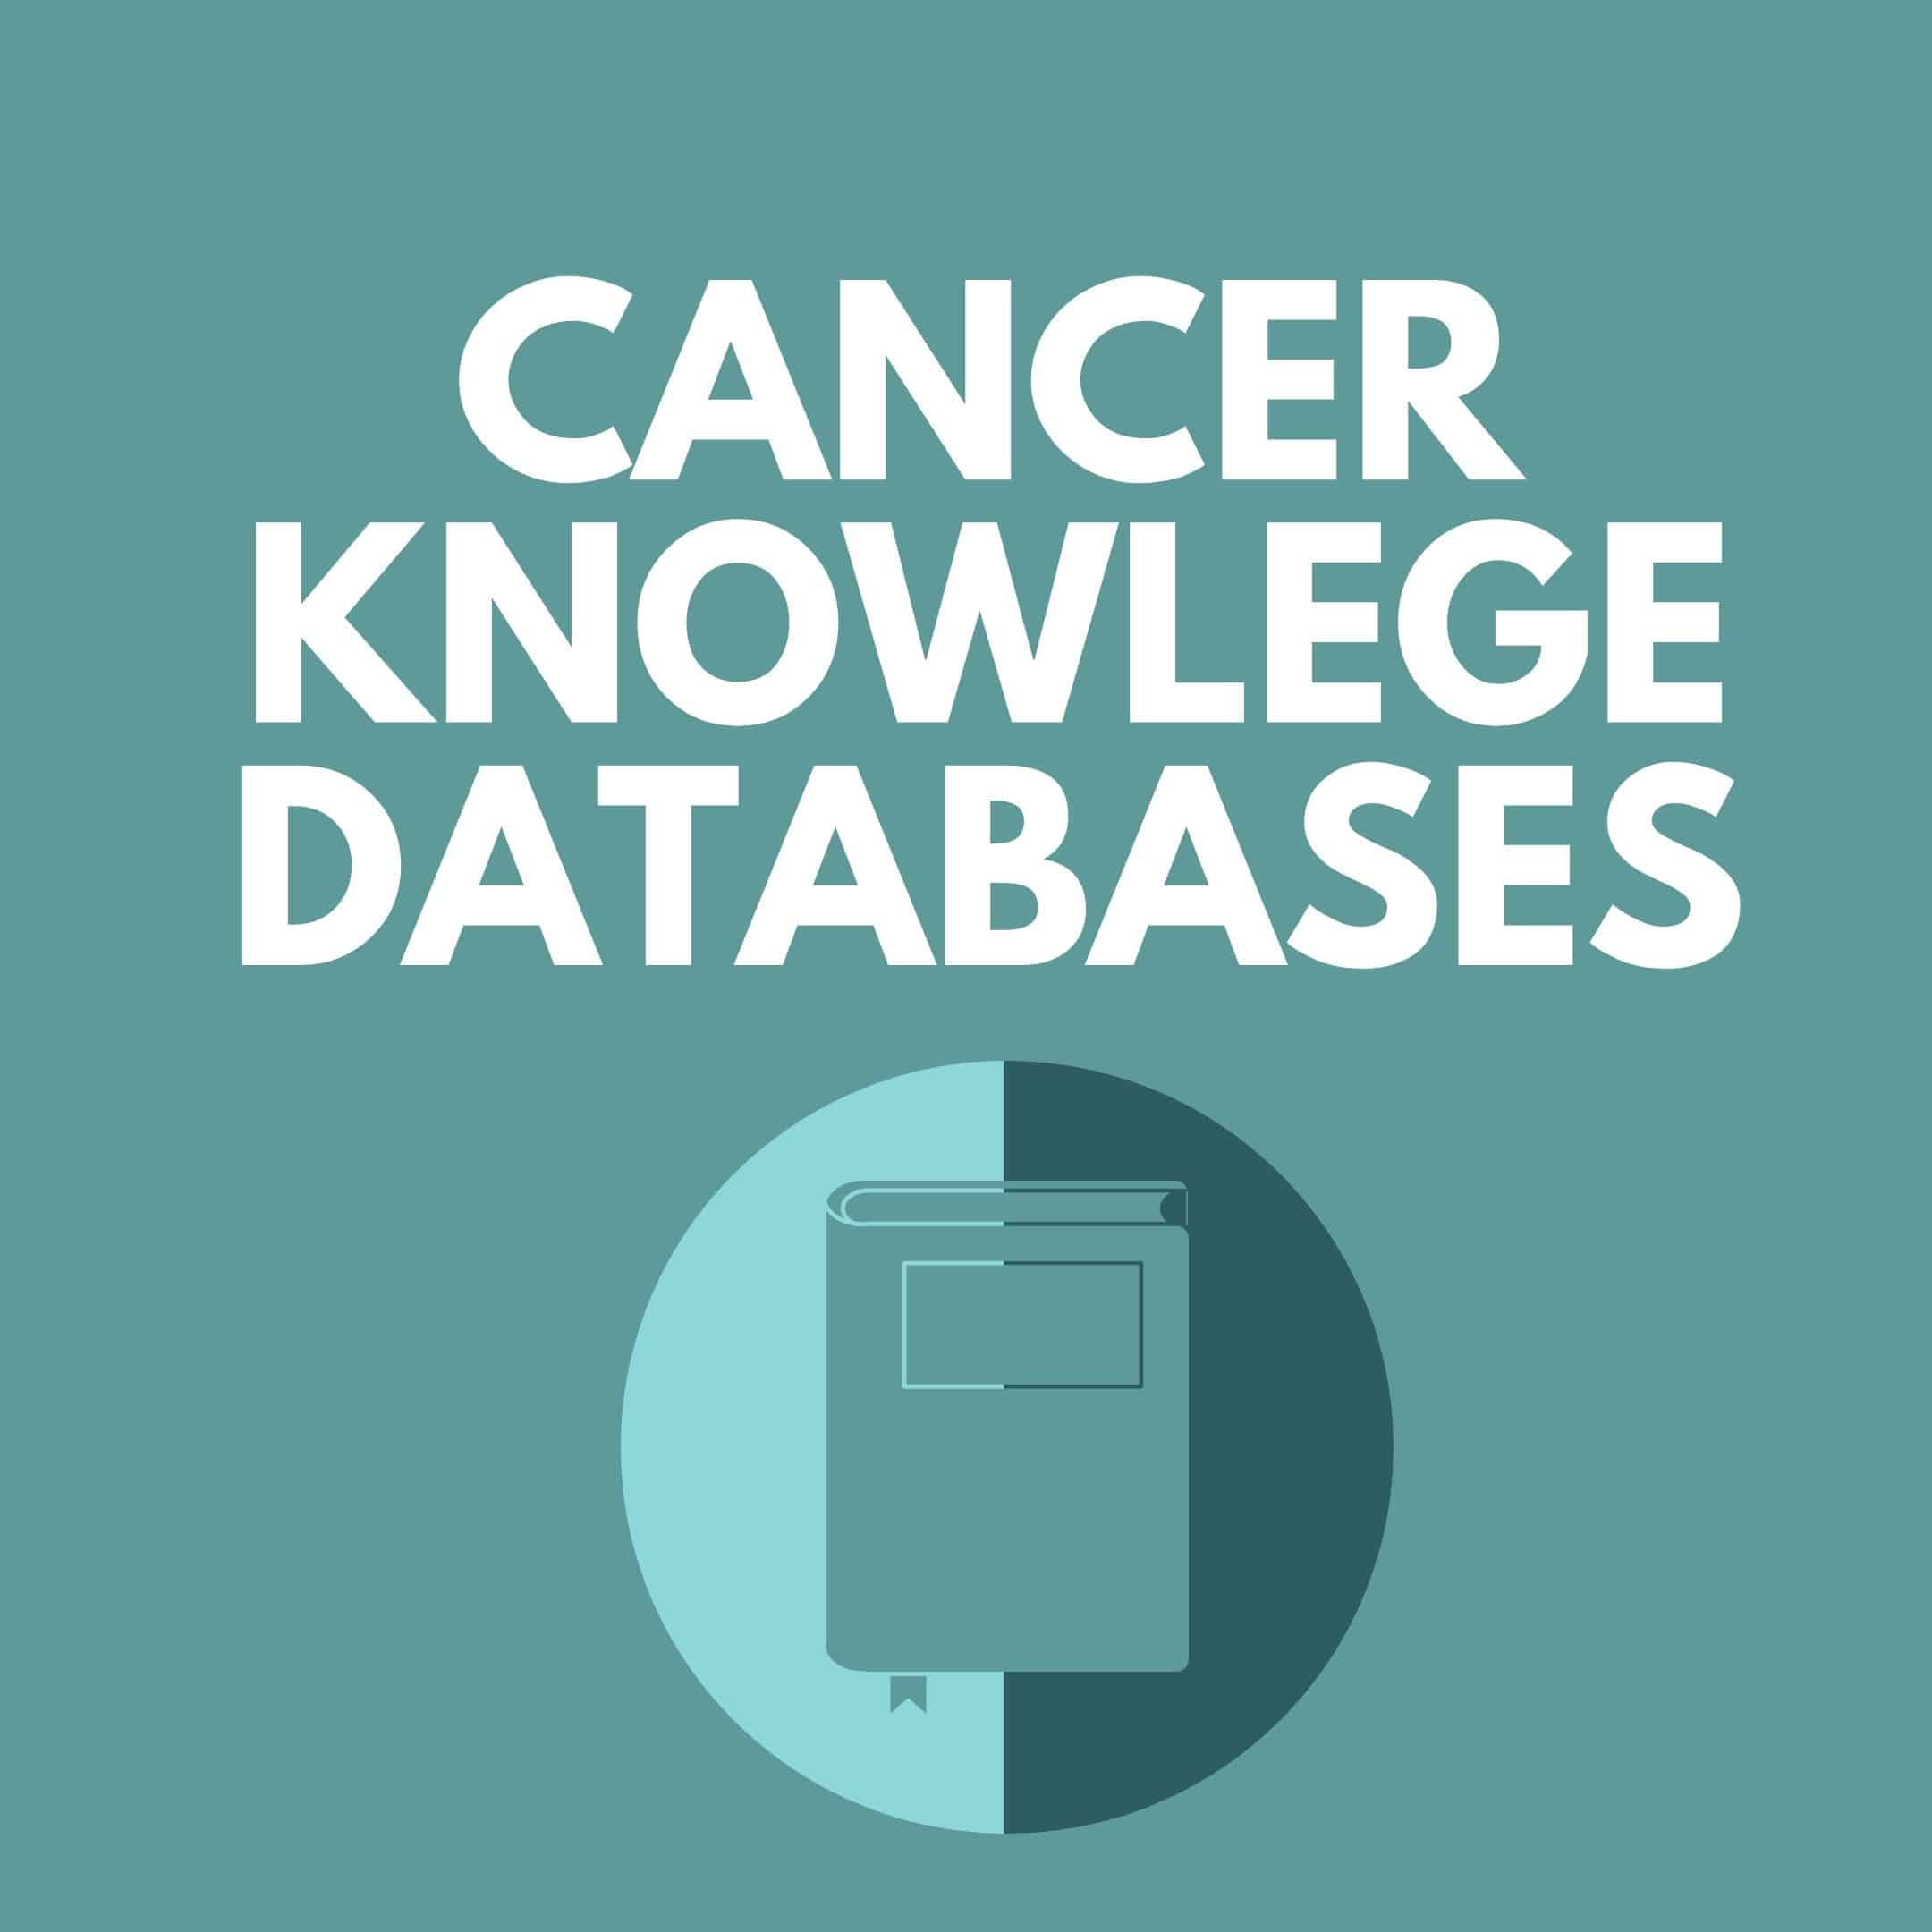 Cancer Knowledge Databases